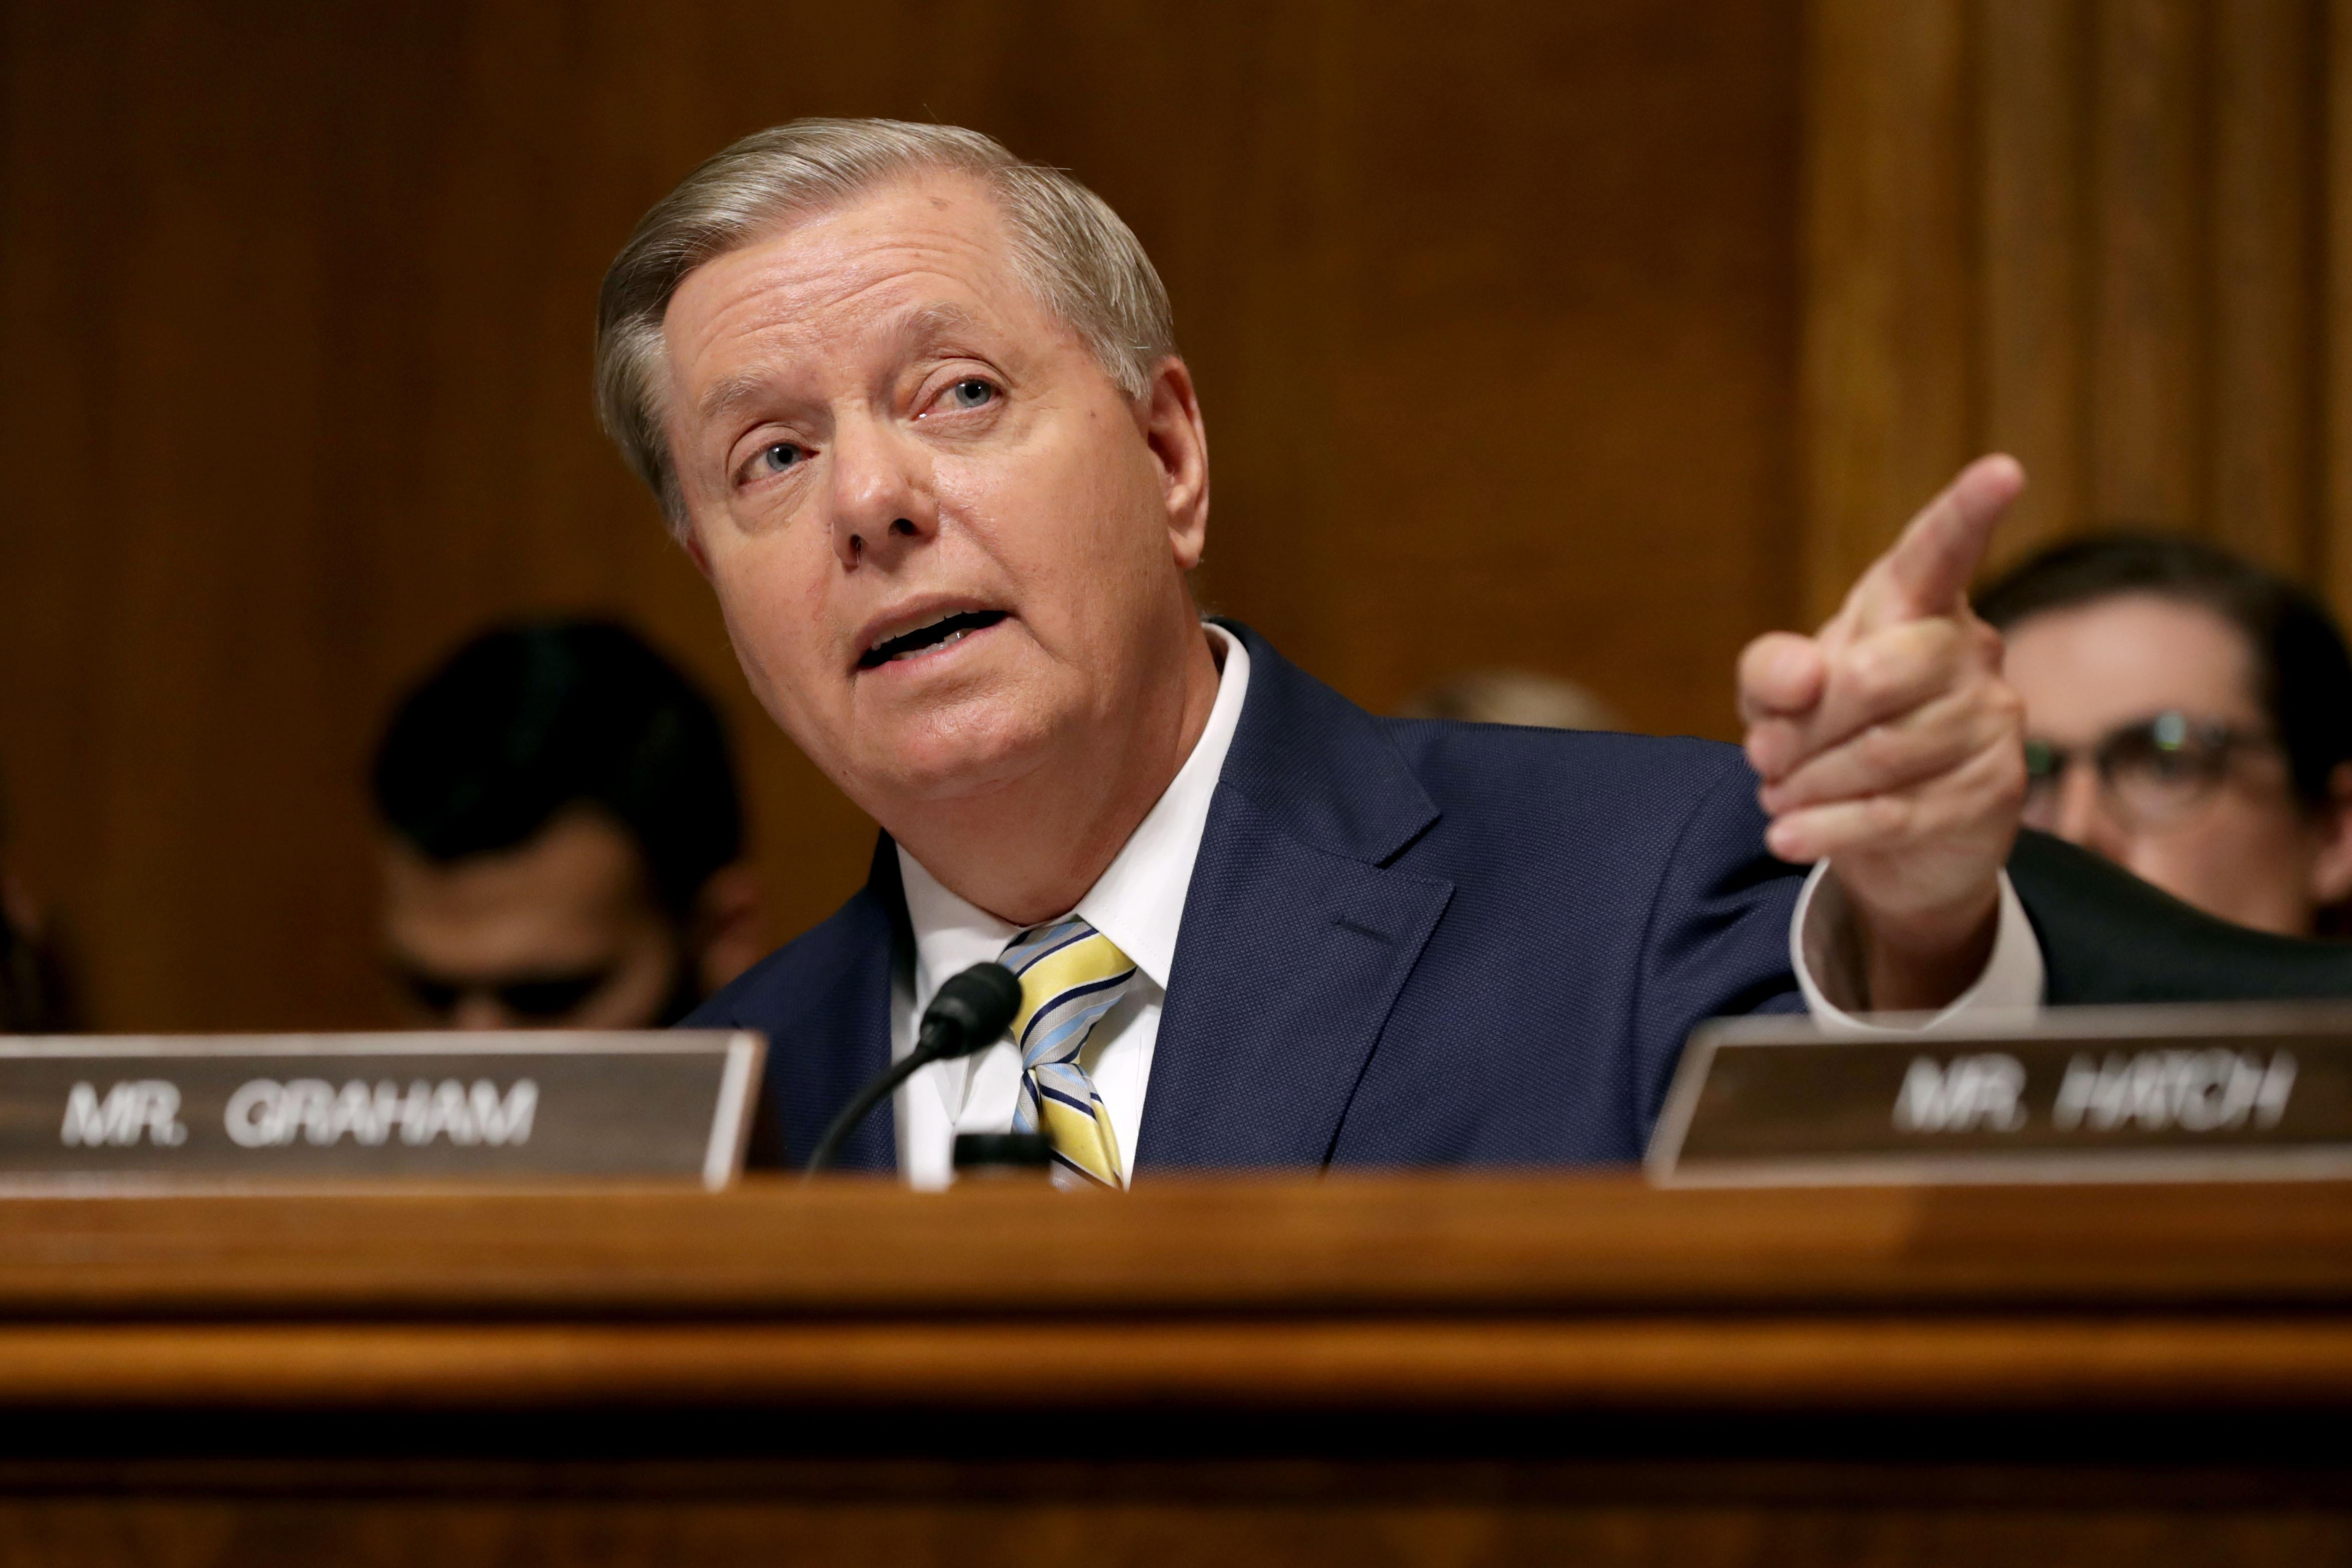 Sen Lindsey Graham points while speaking. A nameplate sits in front of him.